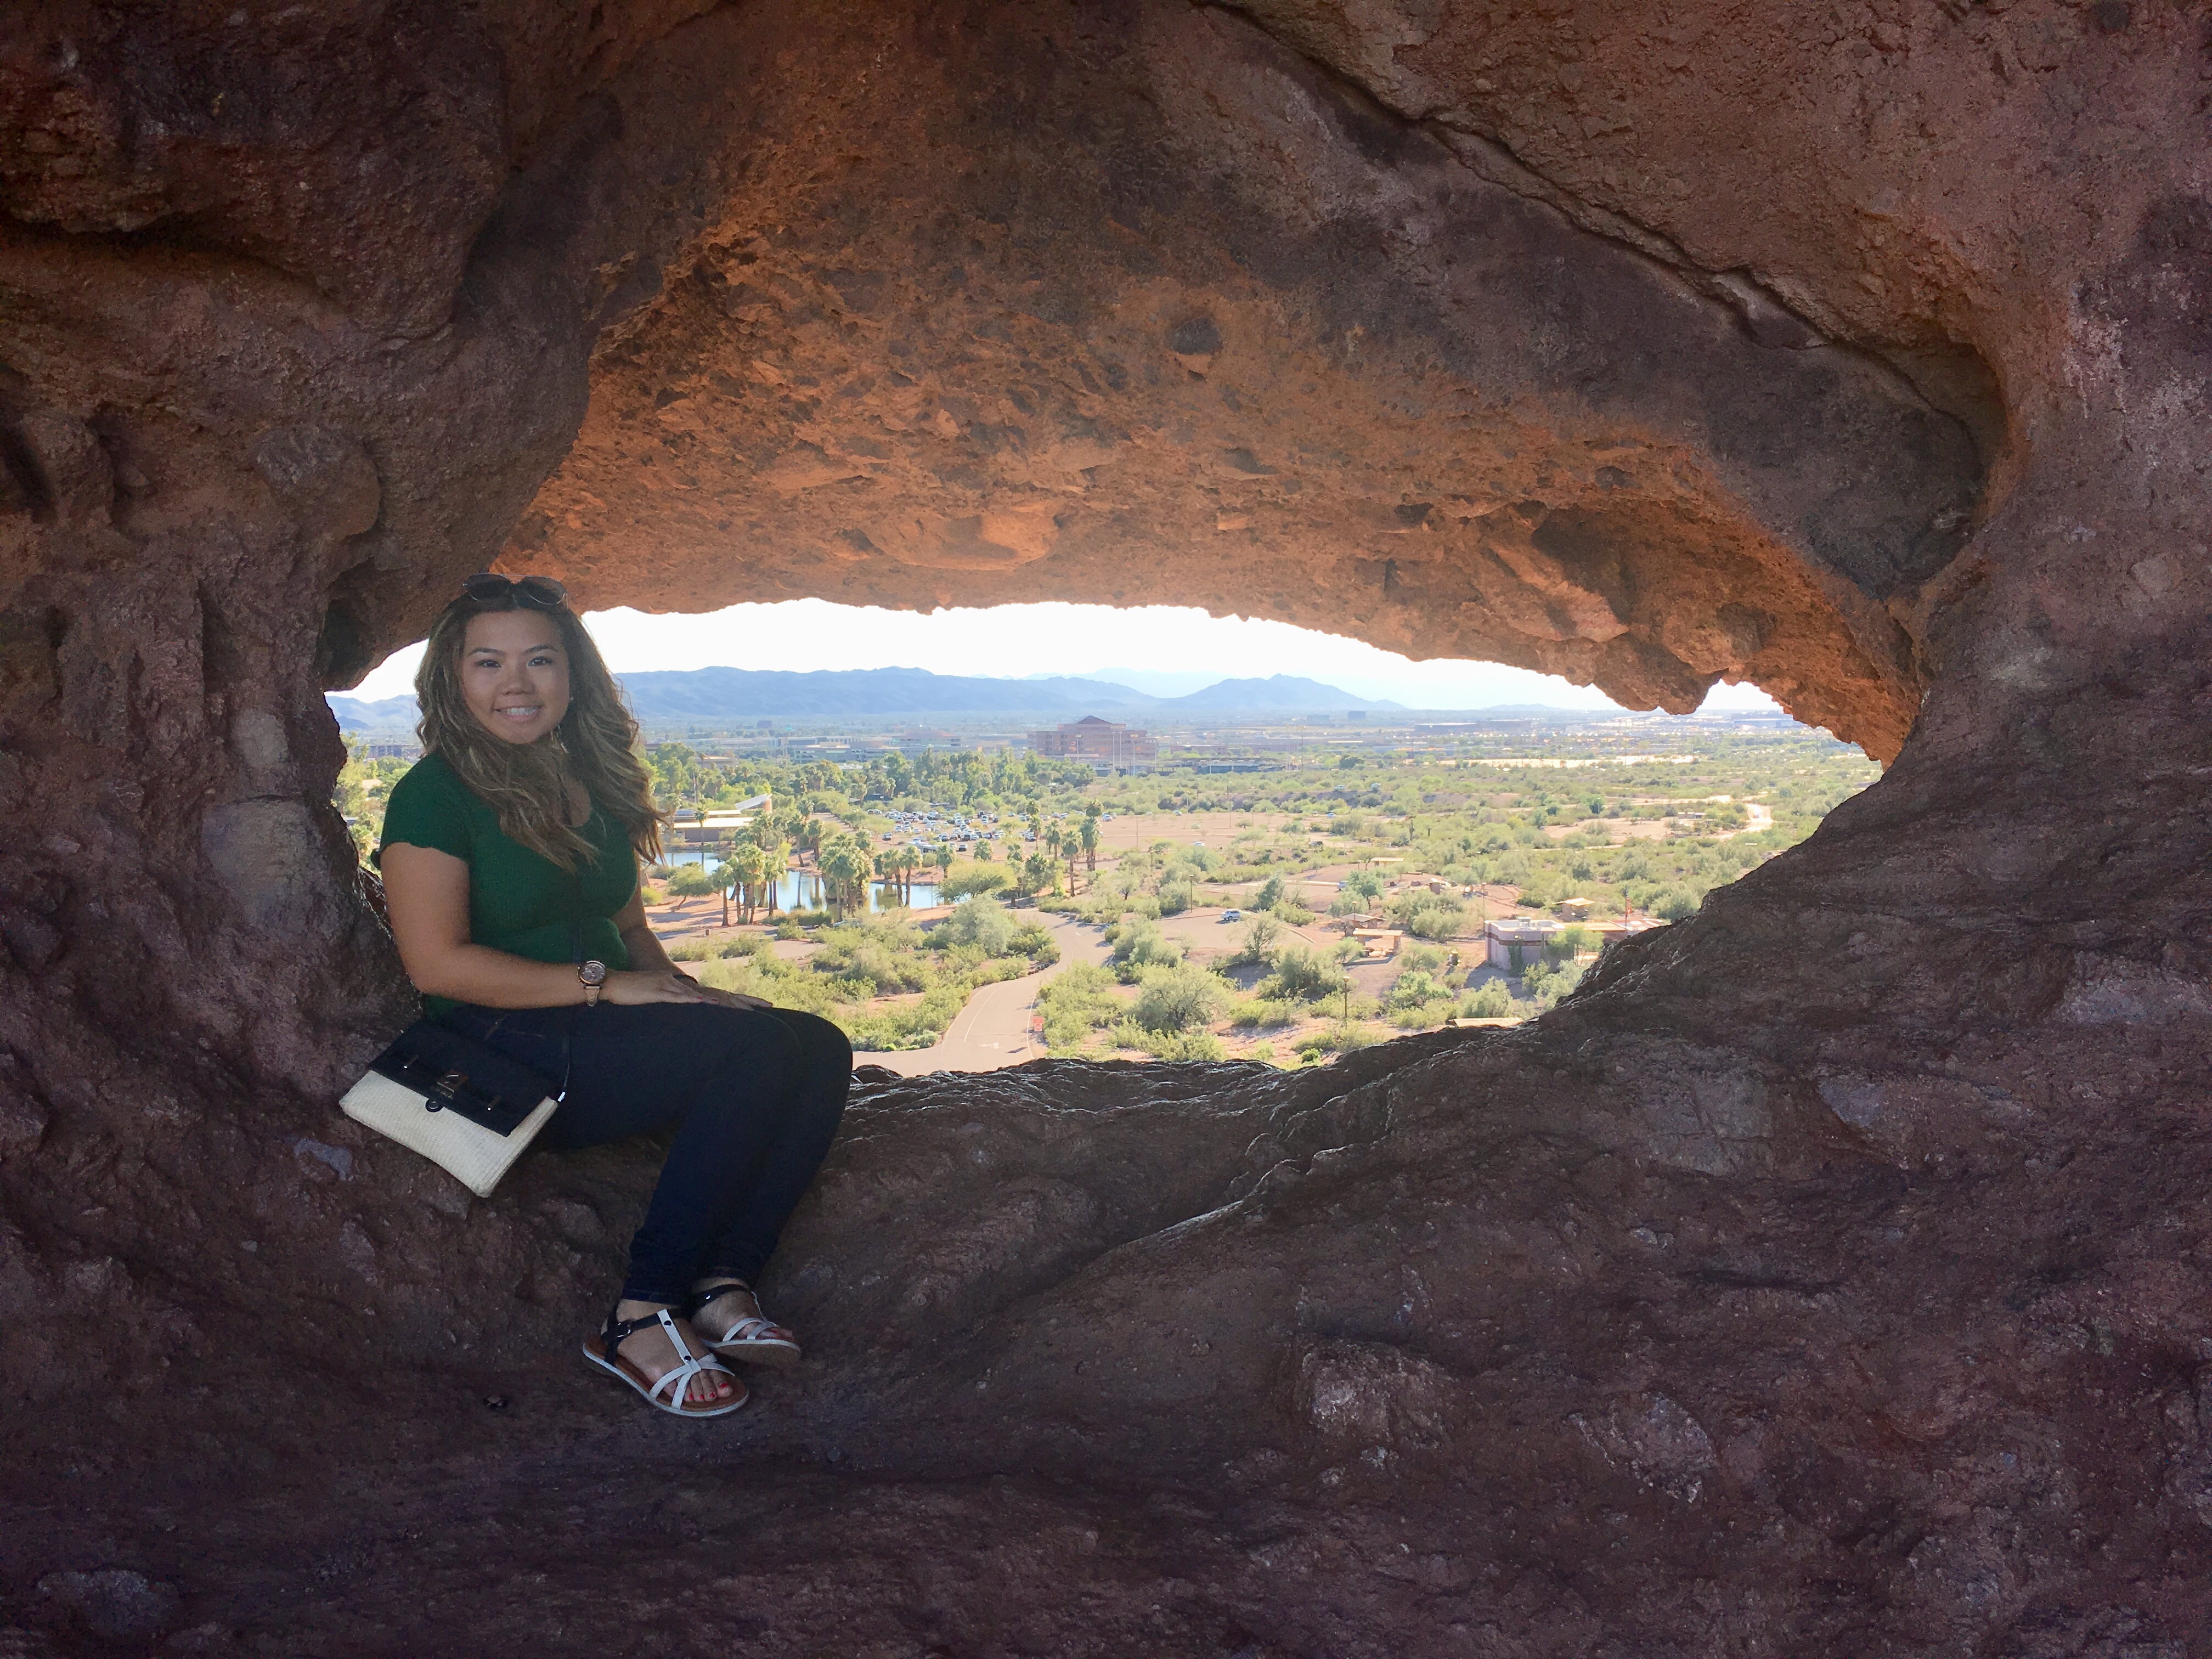 Phoenix, Arizona: Hole-In-The-Rock, a Gift from the Prehistoric People of the Sonoran Desert